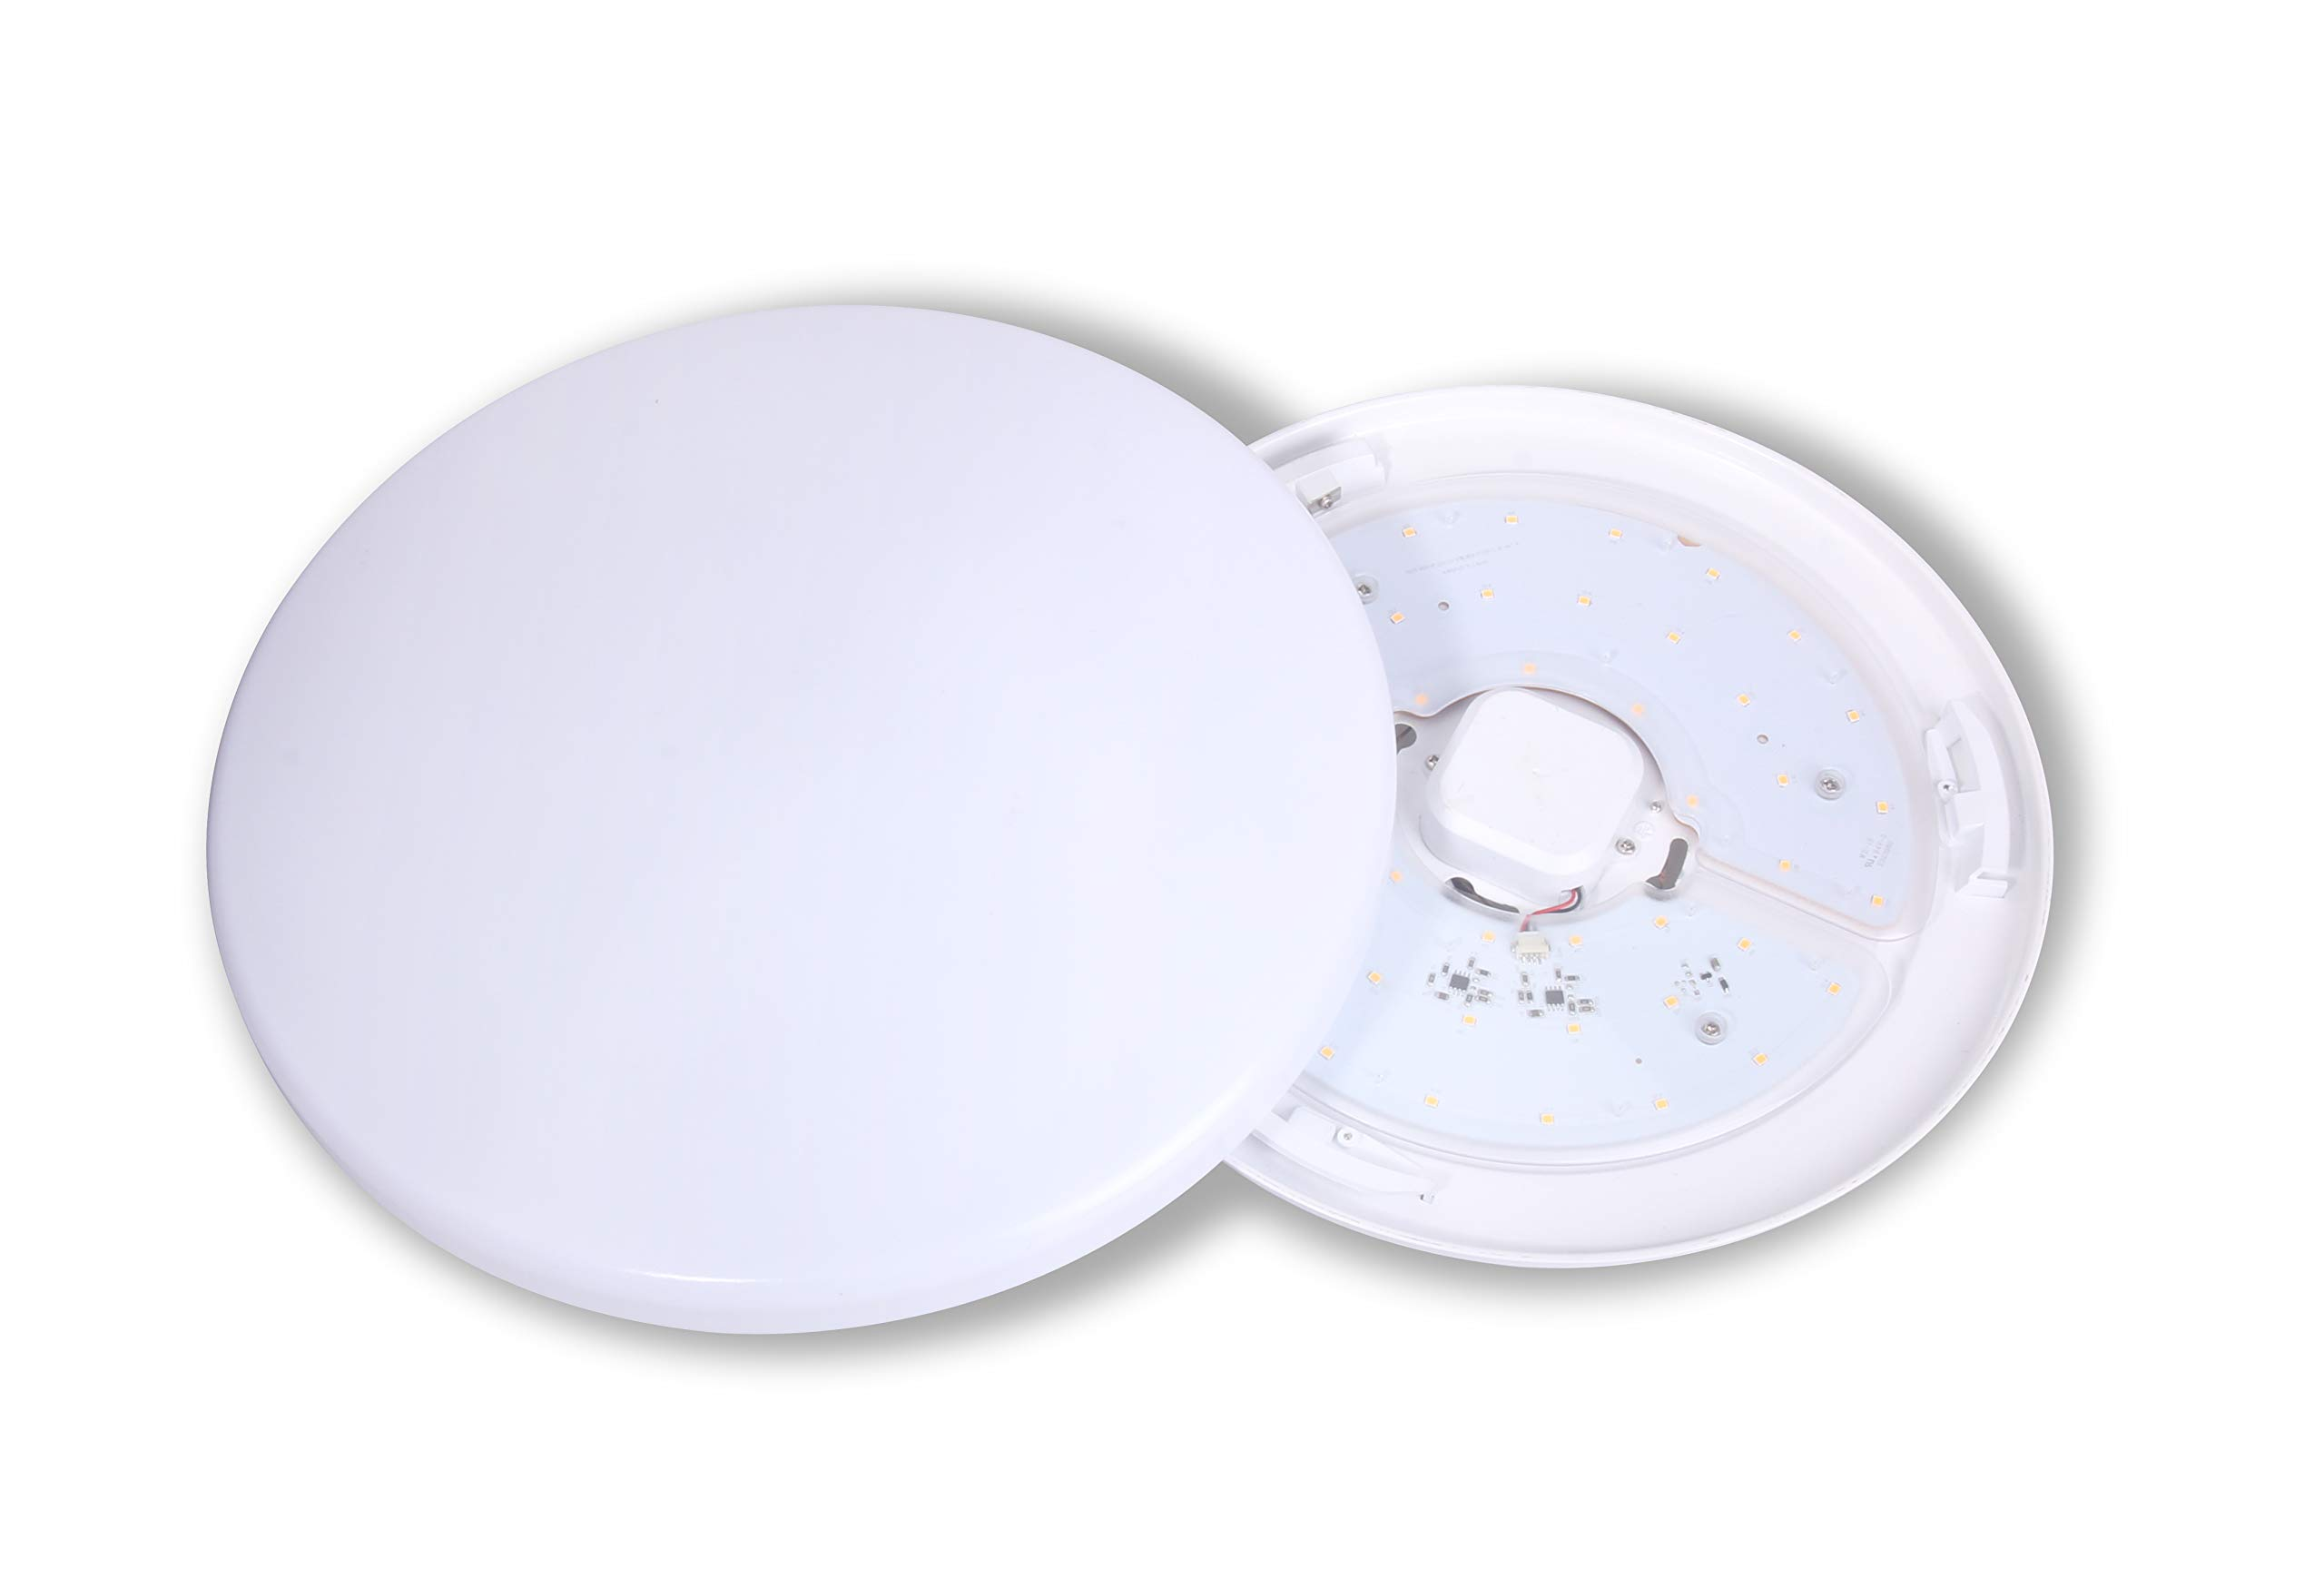 CORAMDEO, 13 inch LED Flush Mount Ceiling Light Fixture, 17.5W Replace 125W, 1300 Lumen, Dimmable, ETL/ES Rated